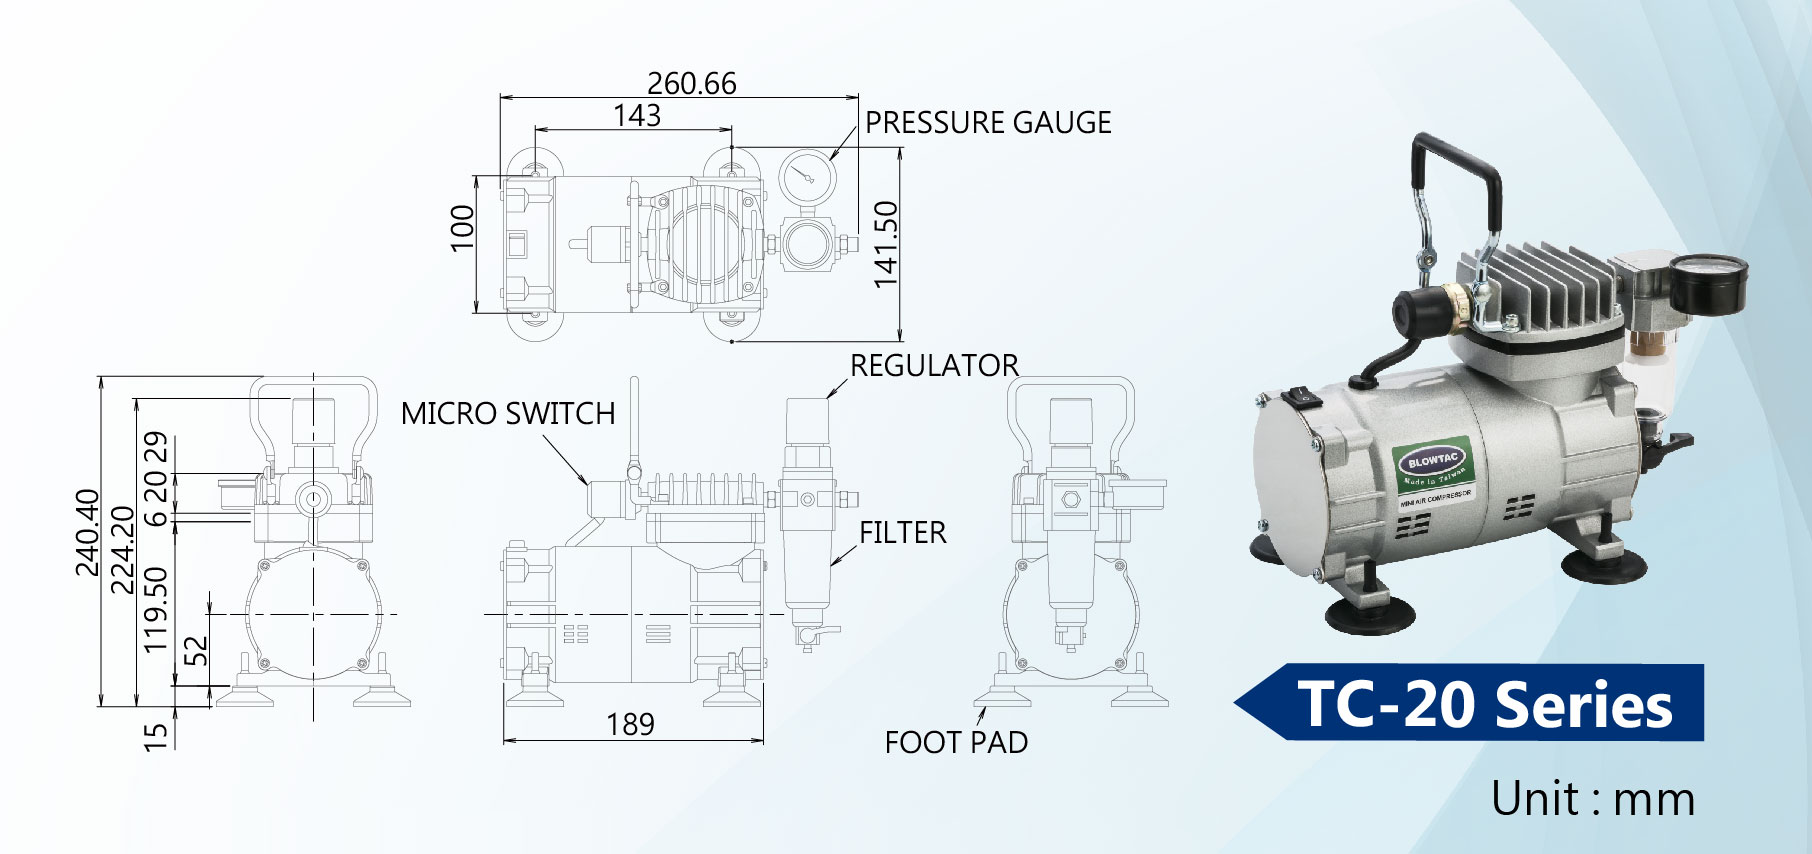 TC-20 Series Mini Air Compressors Dimension